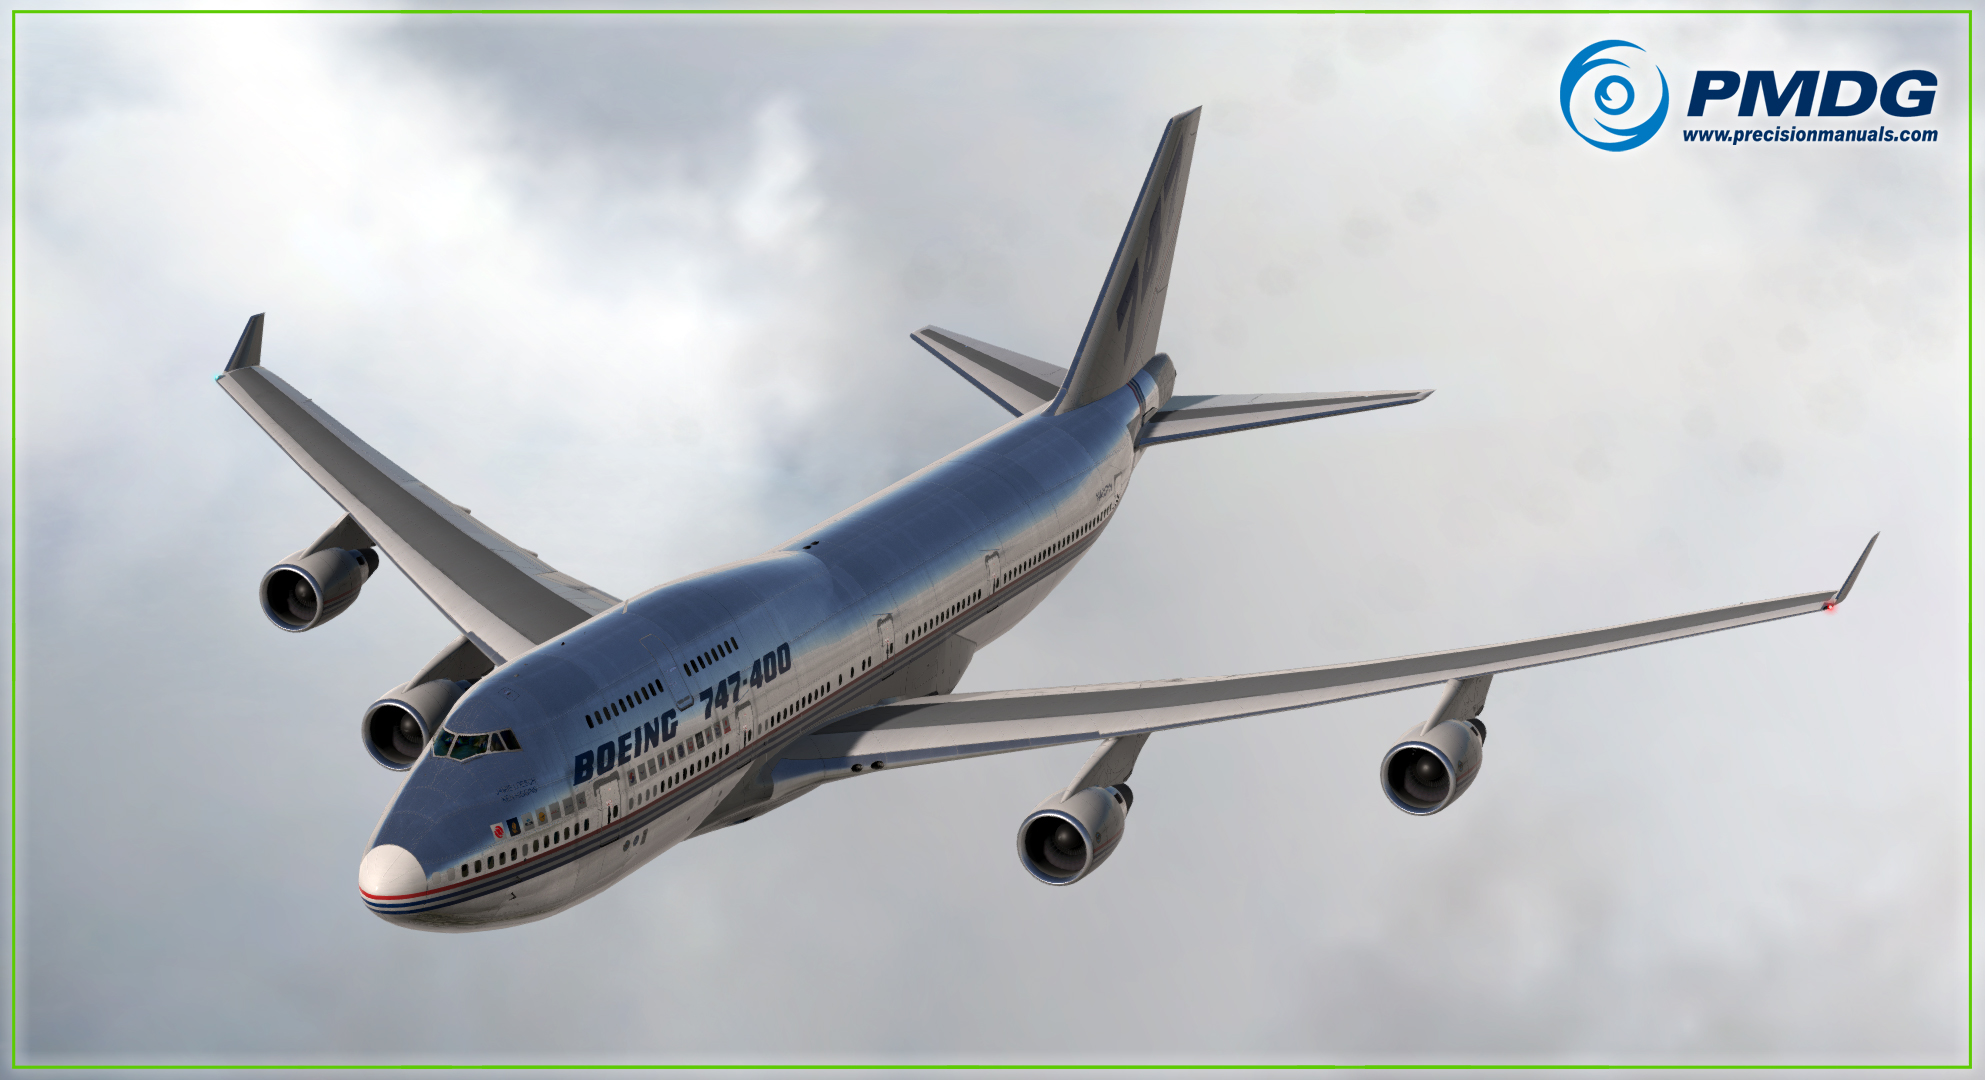 prepar3d / fsx] More PMDG 747 QOTS II PBR Previews + Update